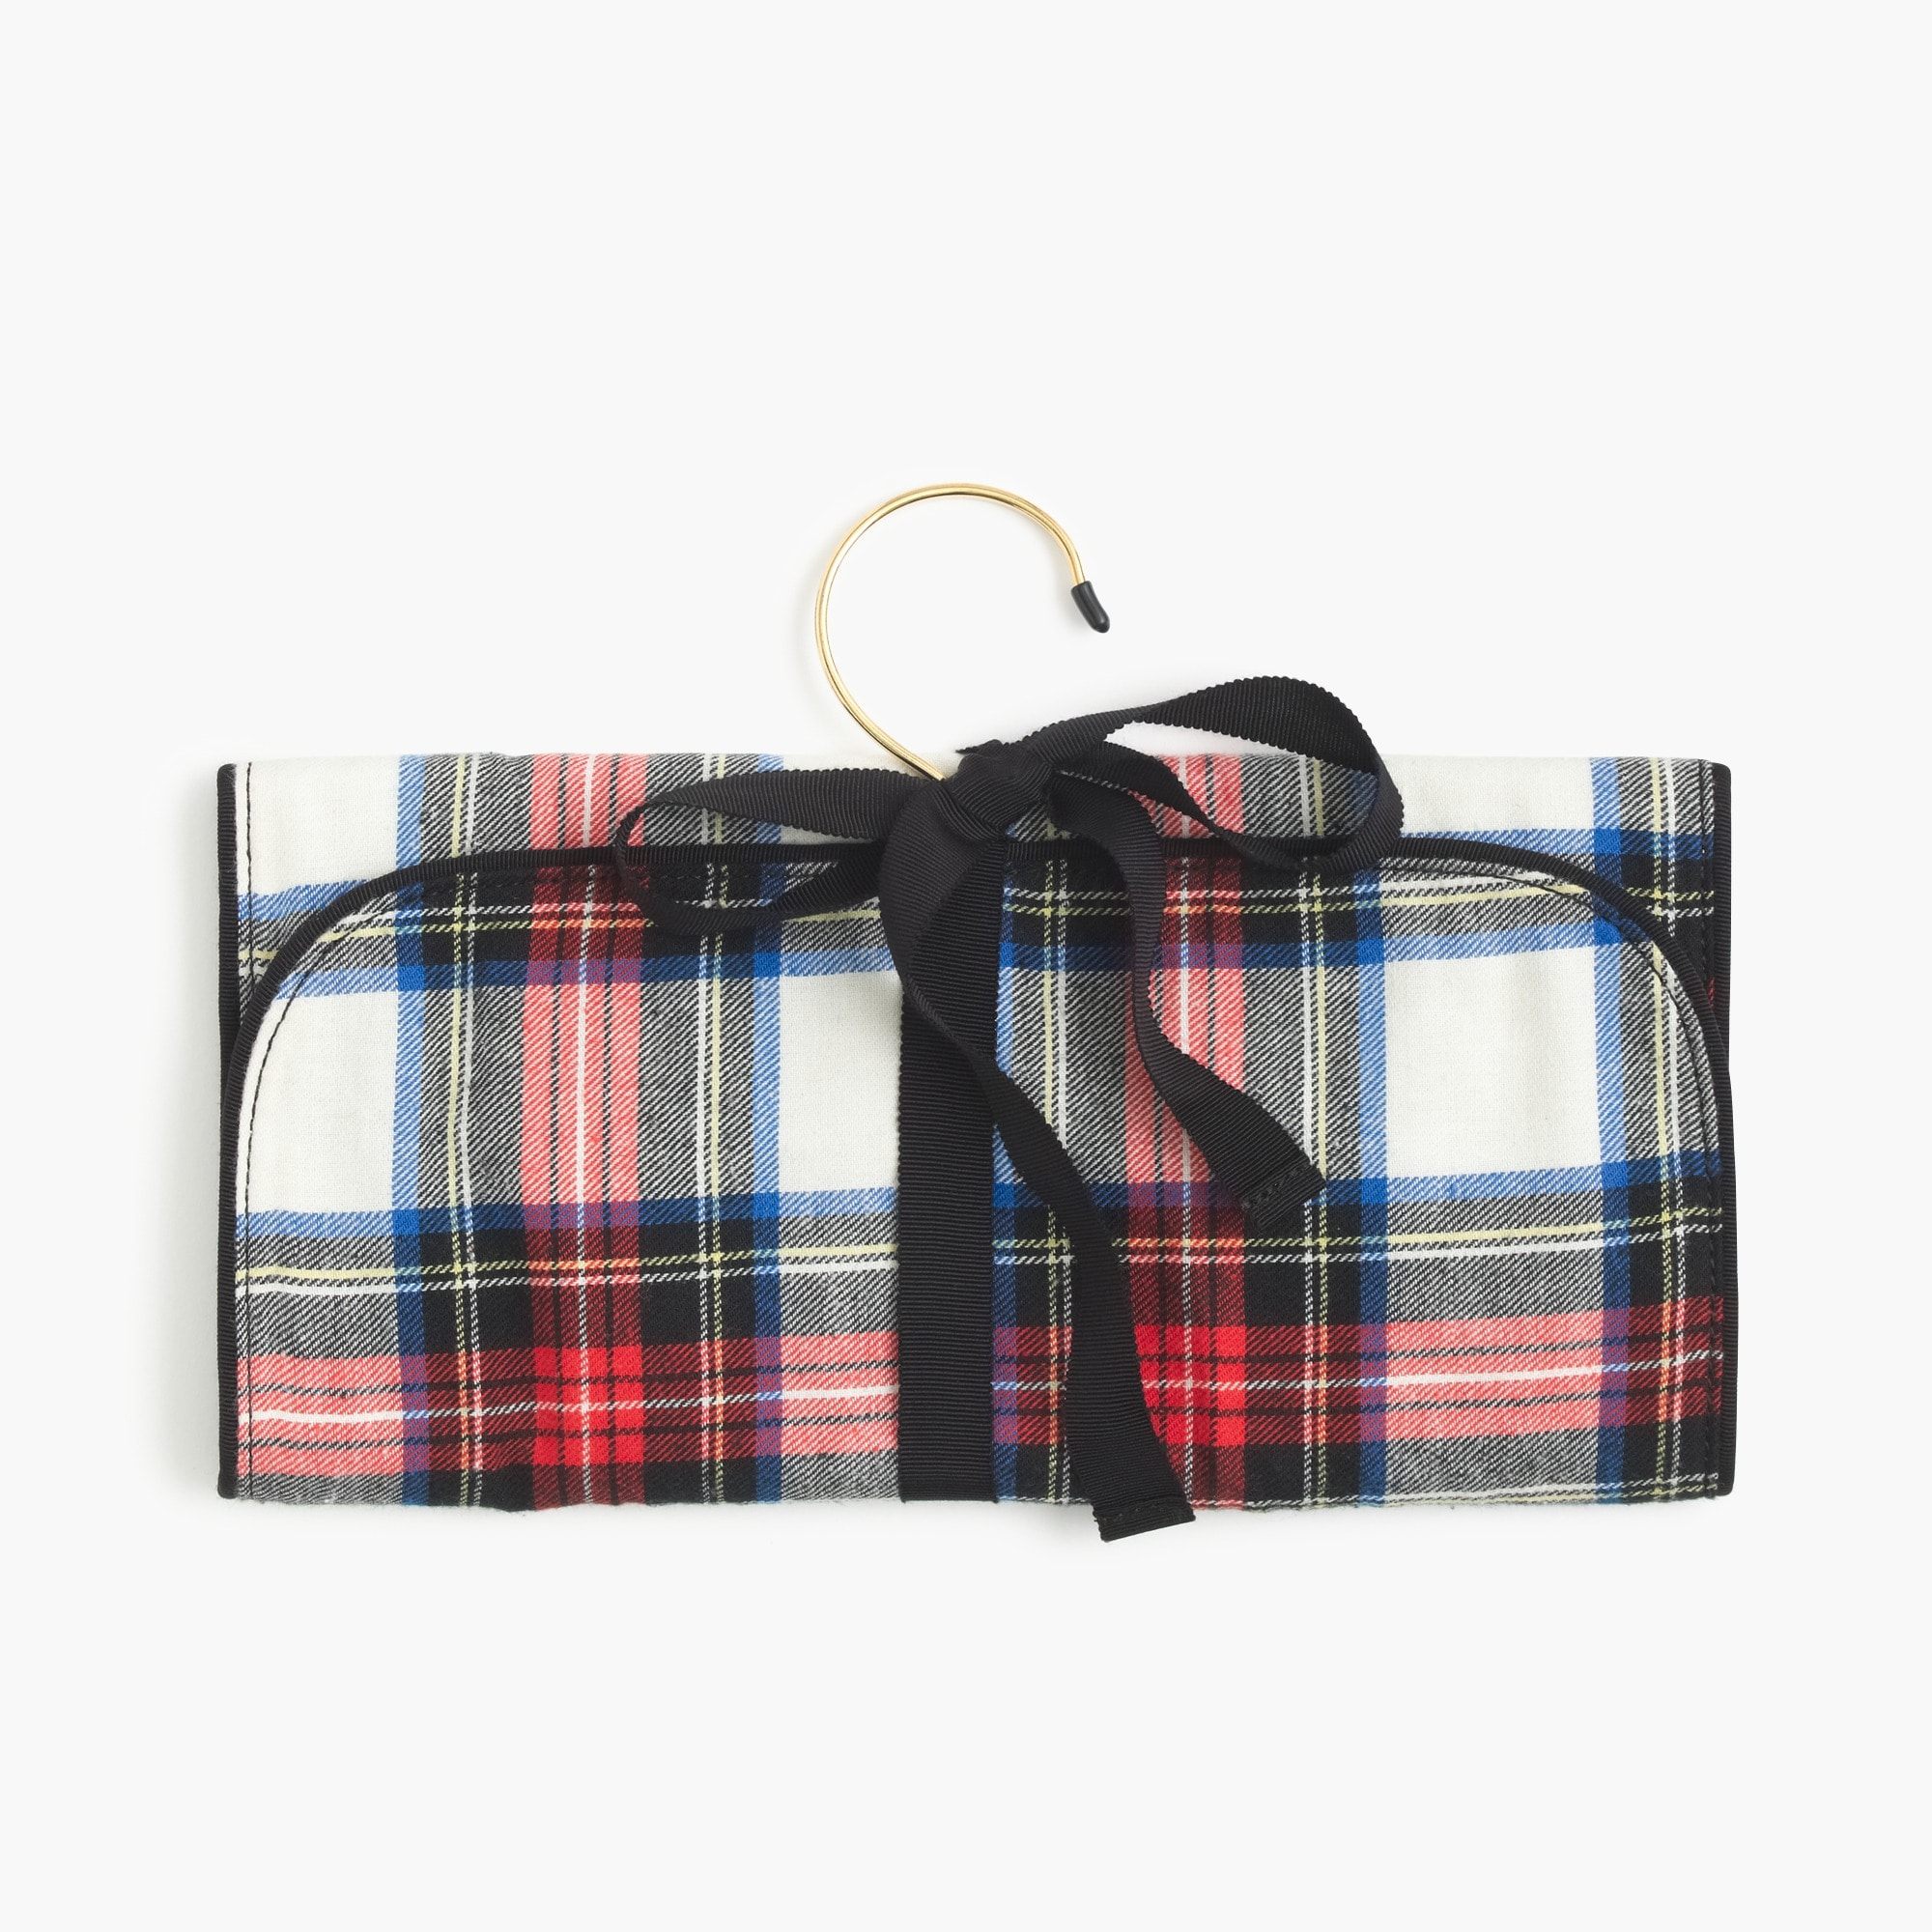 festive plaid jewelry roll : women's accessories